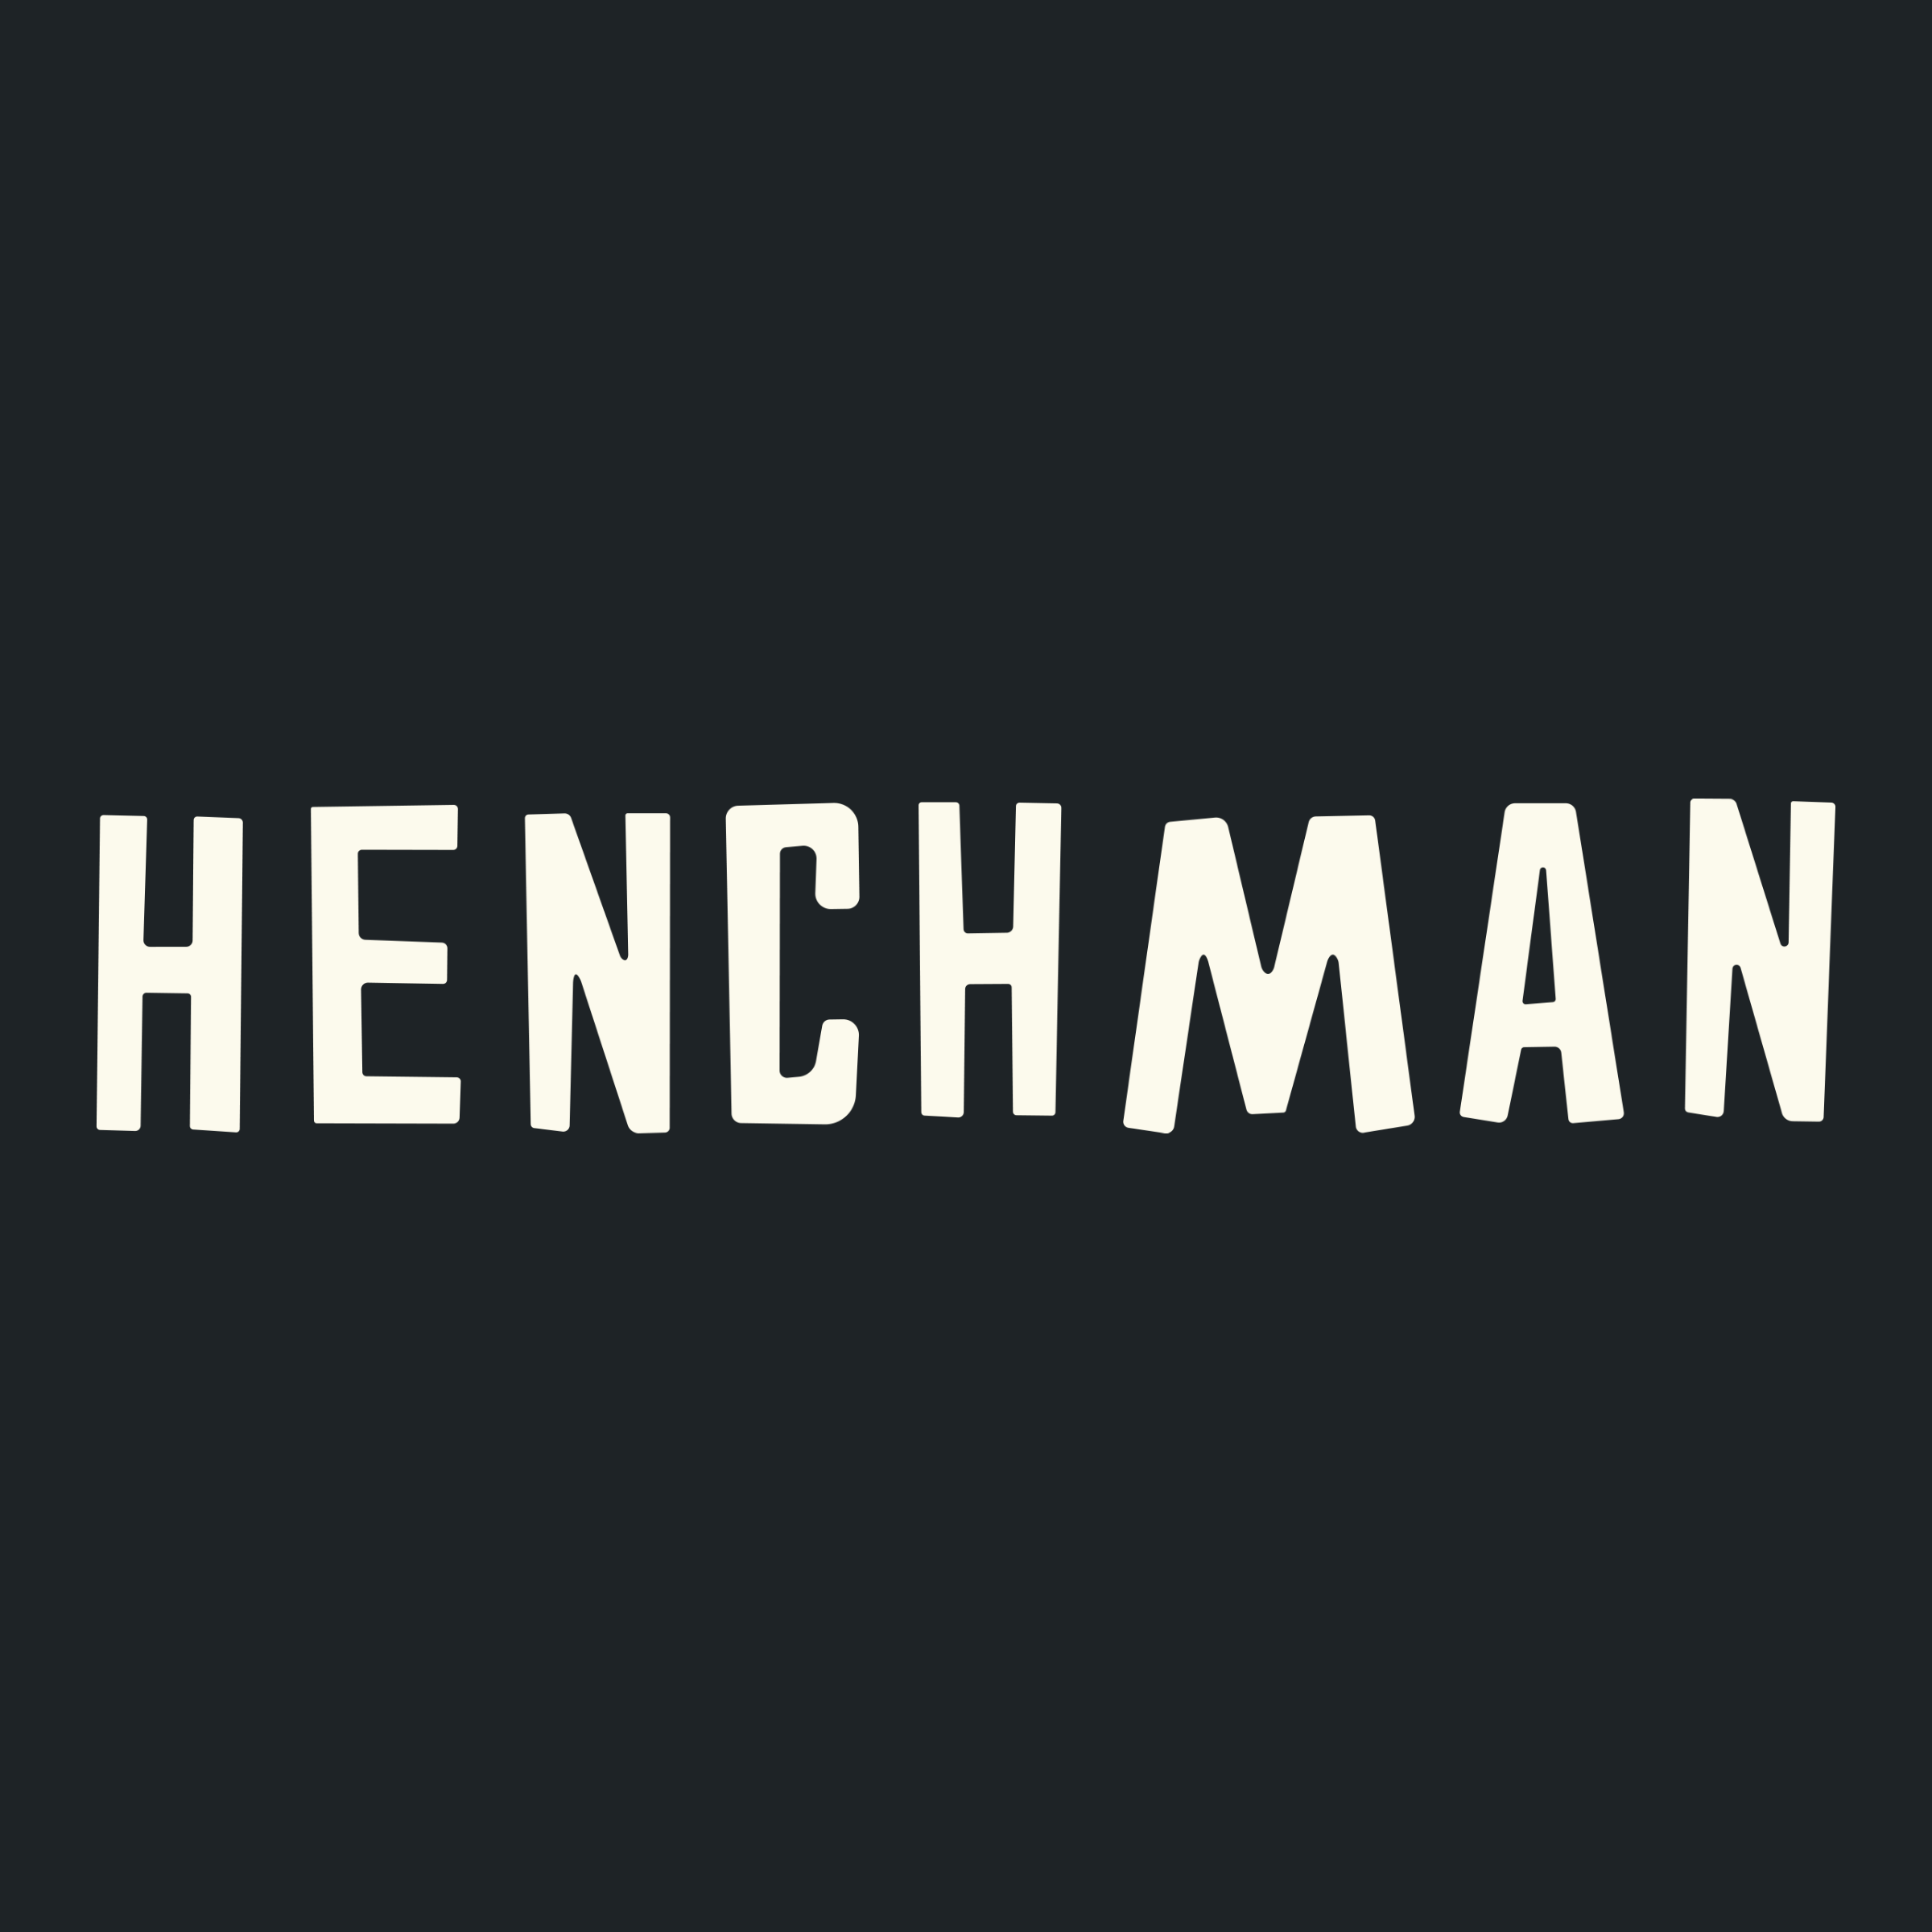 HENCHMAN